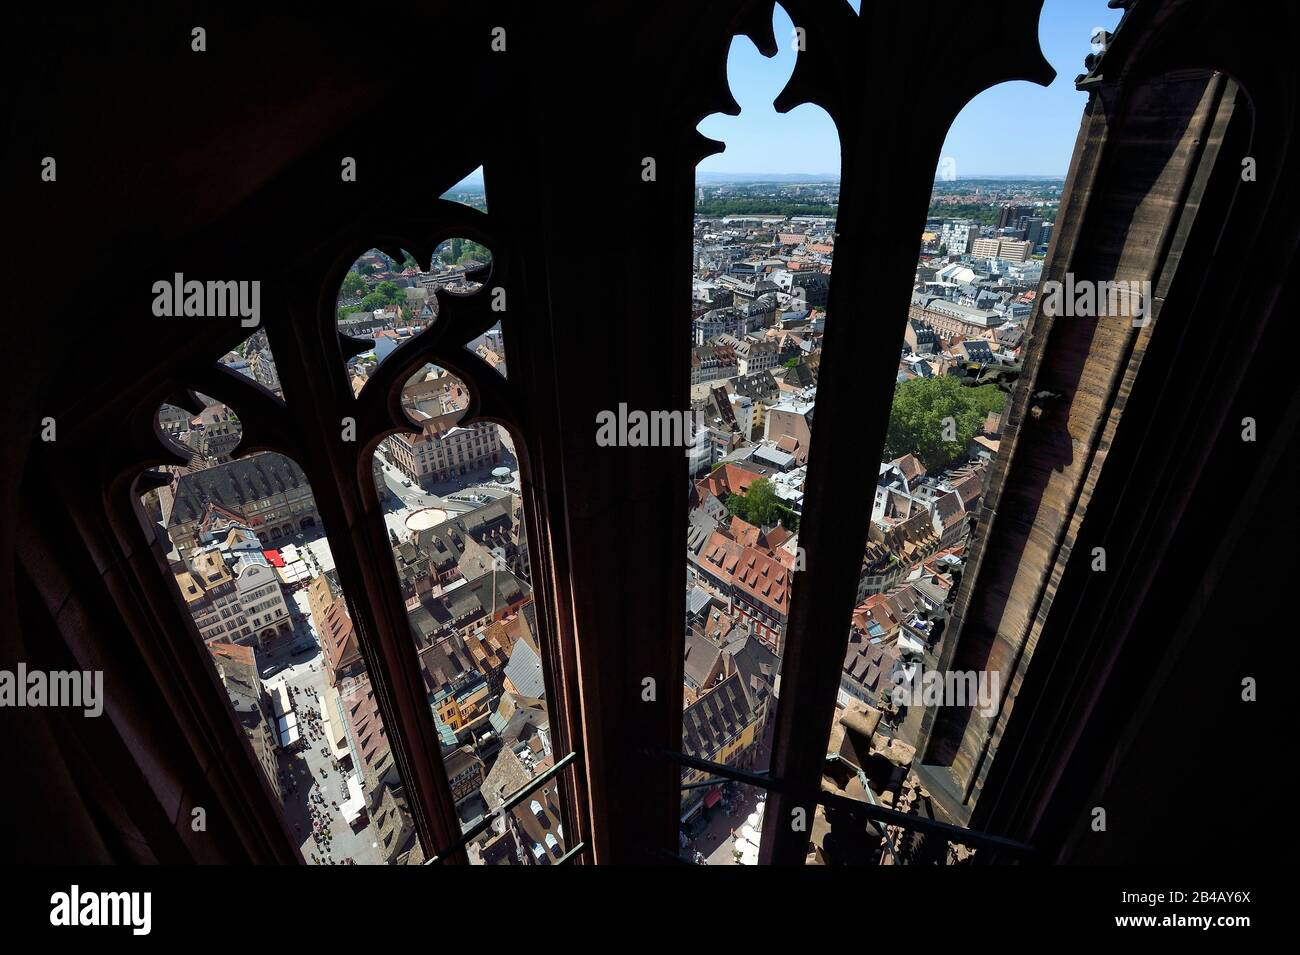 Terrasse Composite Bas Rhin cathedral square in strasbourg stock photos & cathedral